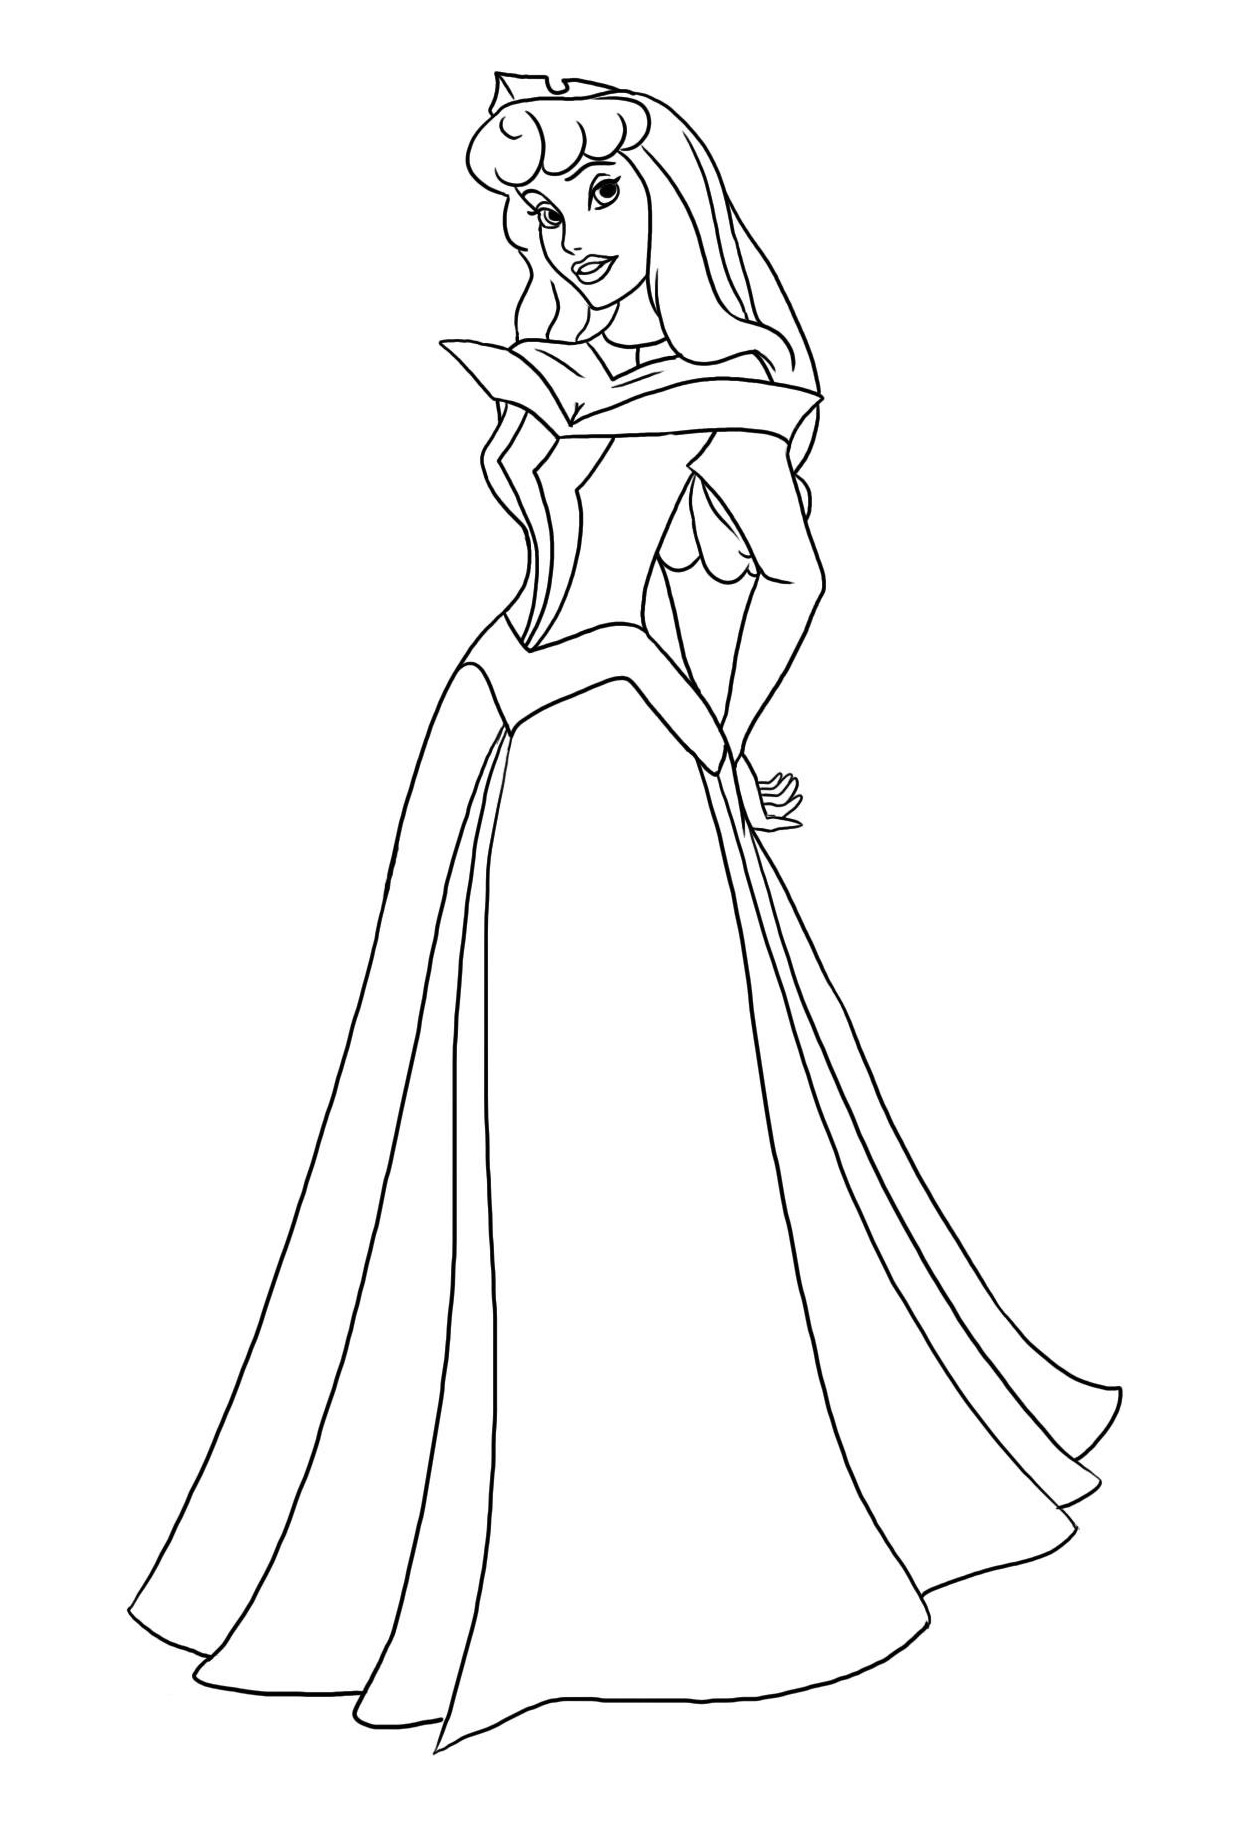 sleeping beauty coloring coloring pages sleeping beauty animated images gifs coloring beauty sleeping